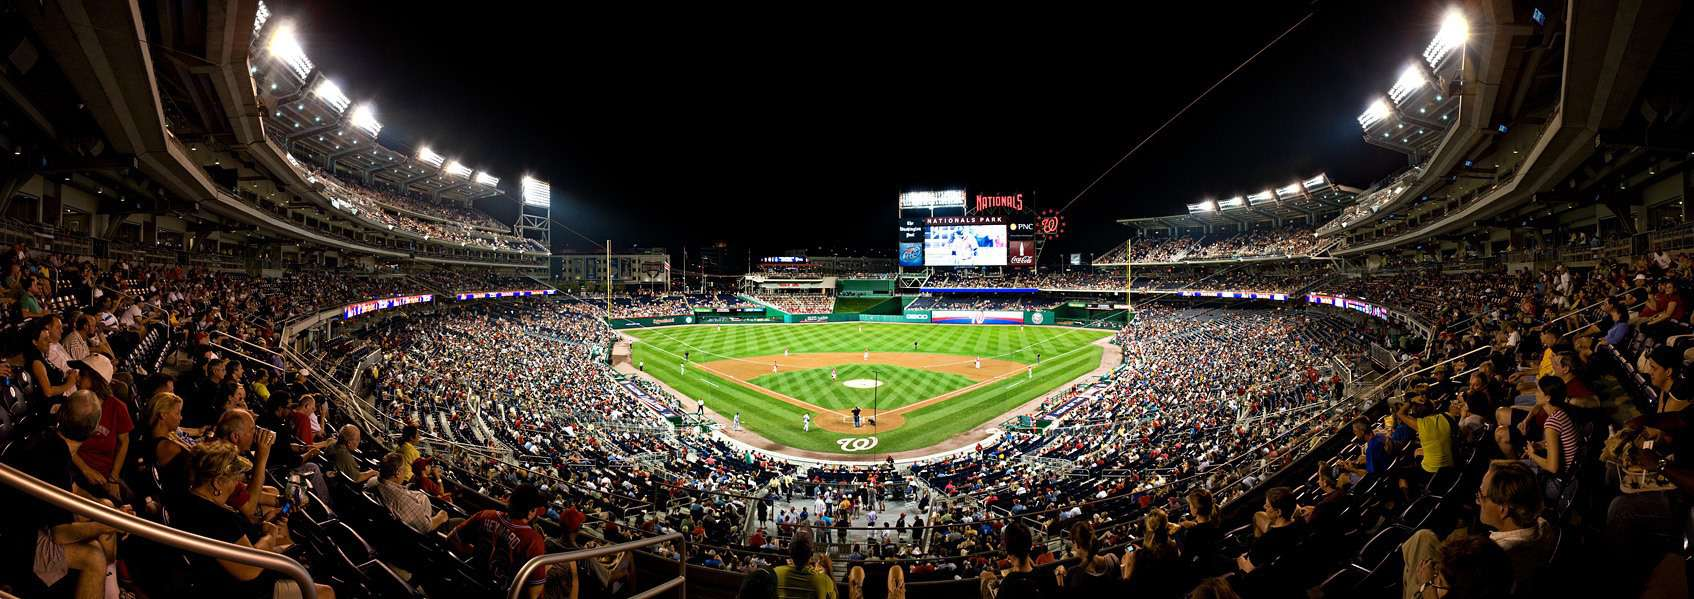 Night Panorama at Nationals Park